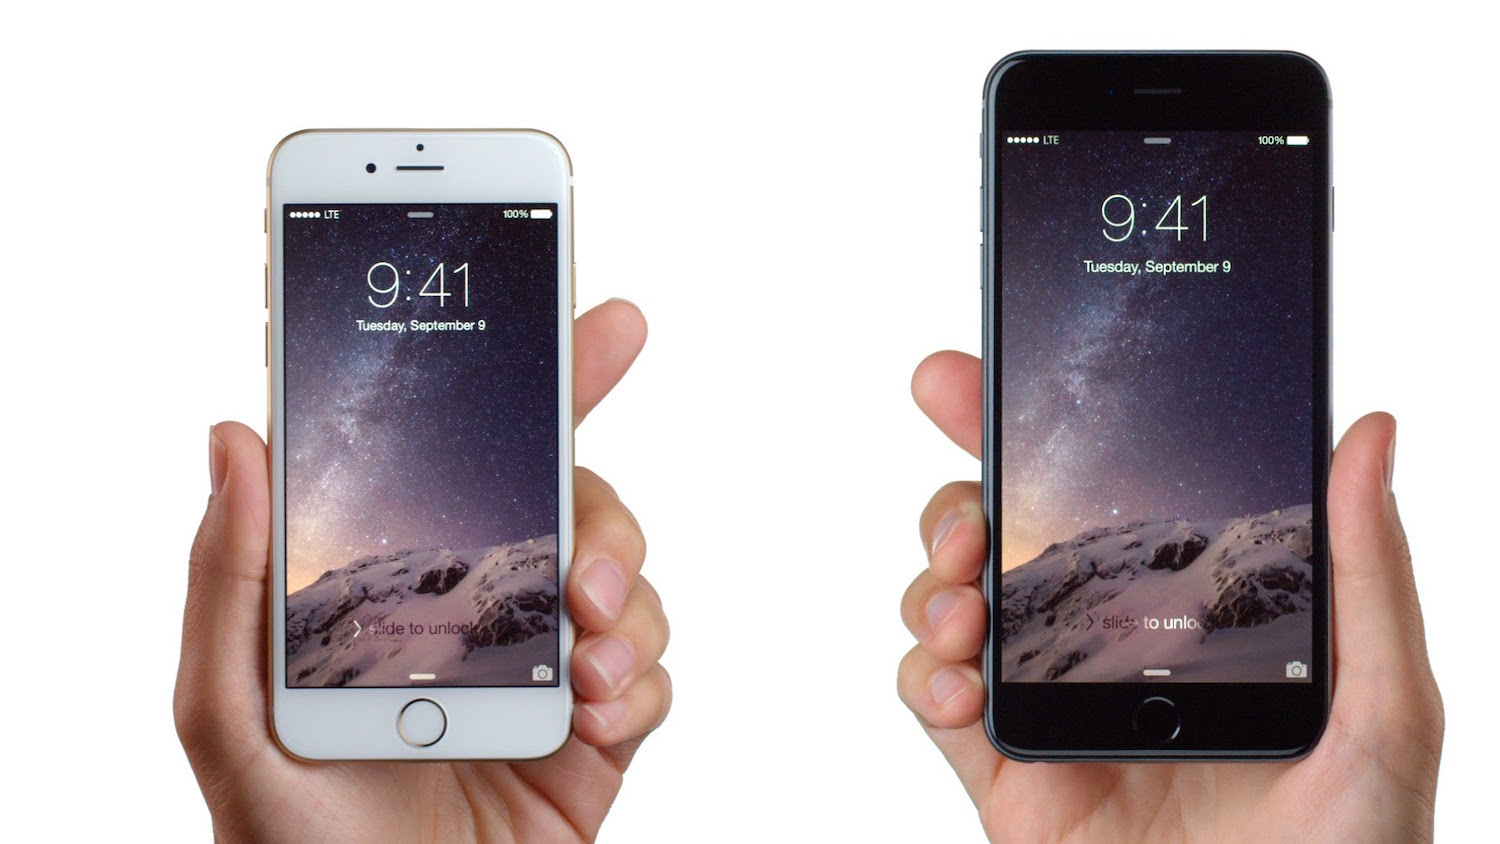 Updated: Apple axes iPhone 6 and iPhone 6 Plus, as iPhone 7 gets an early release